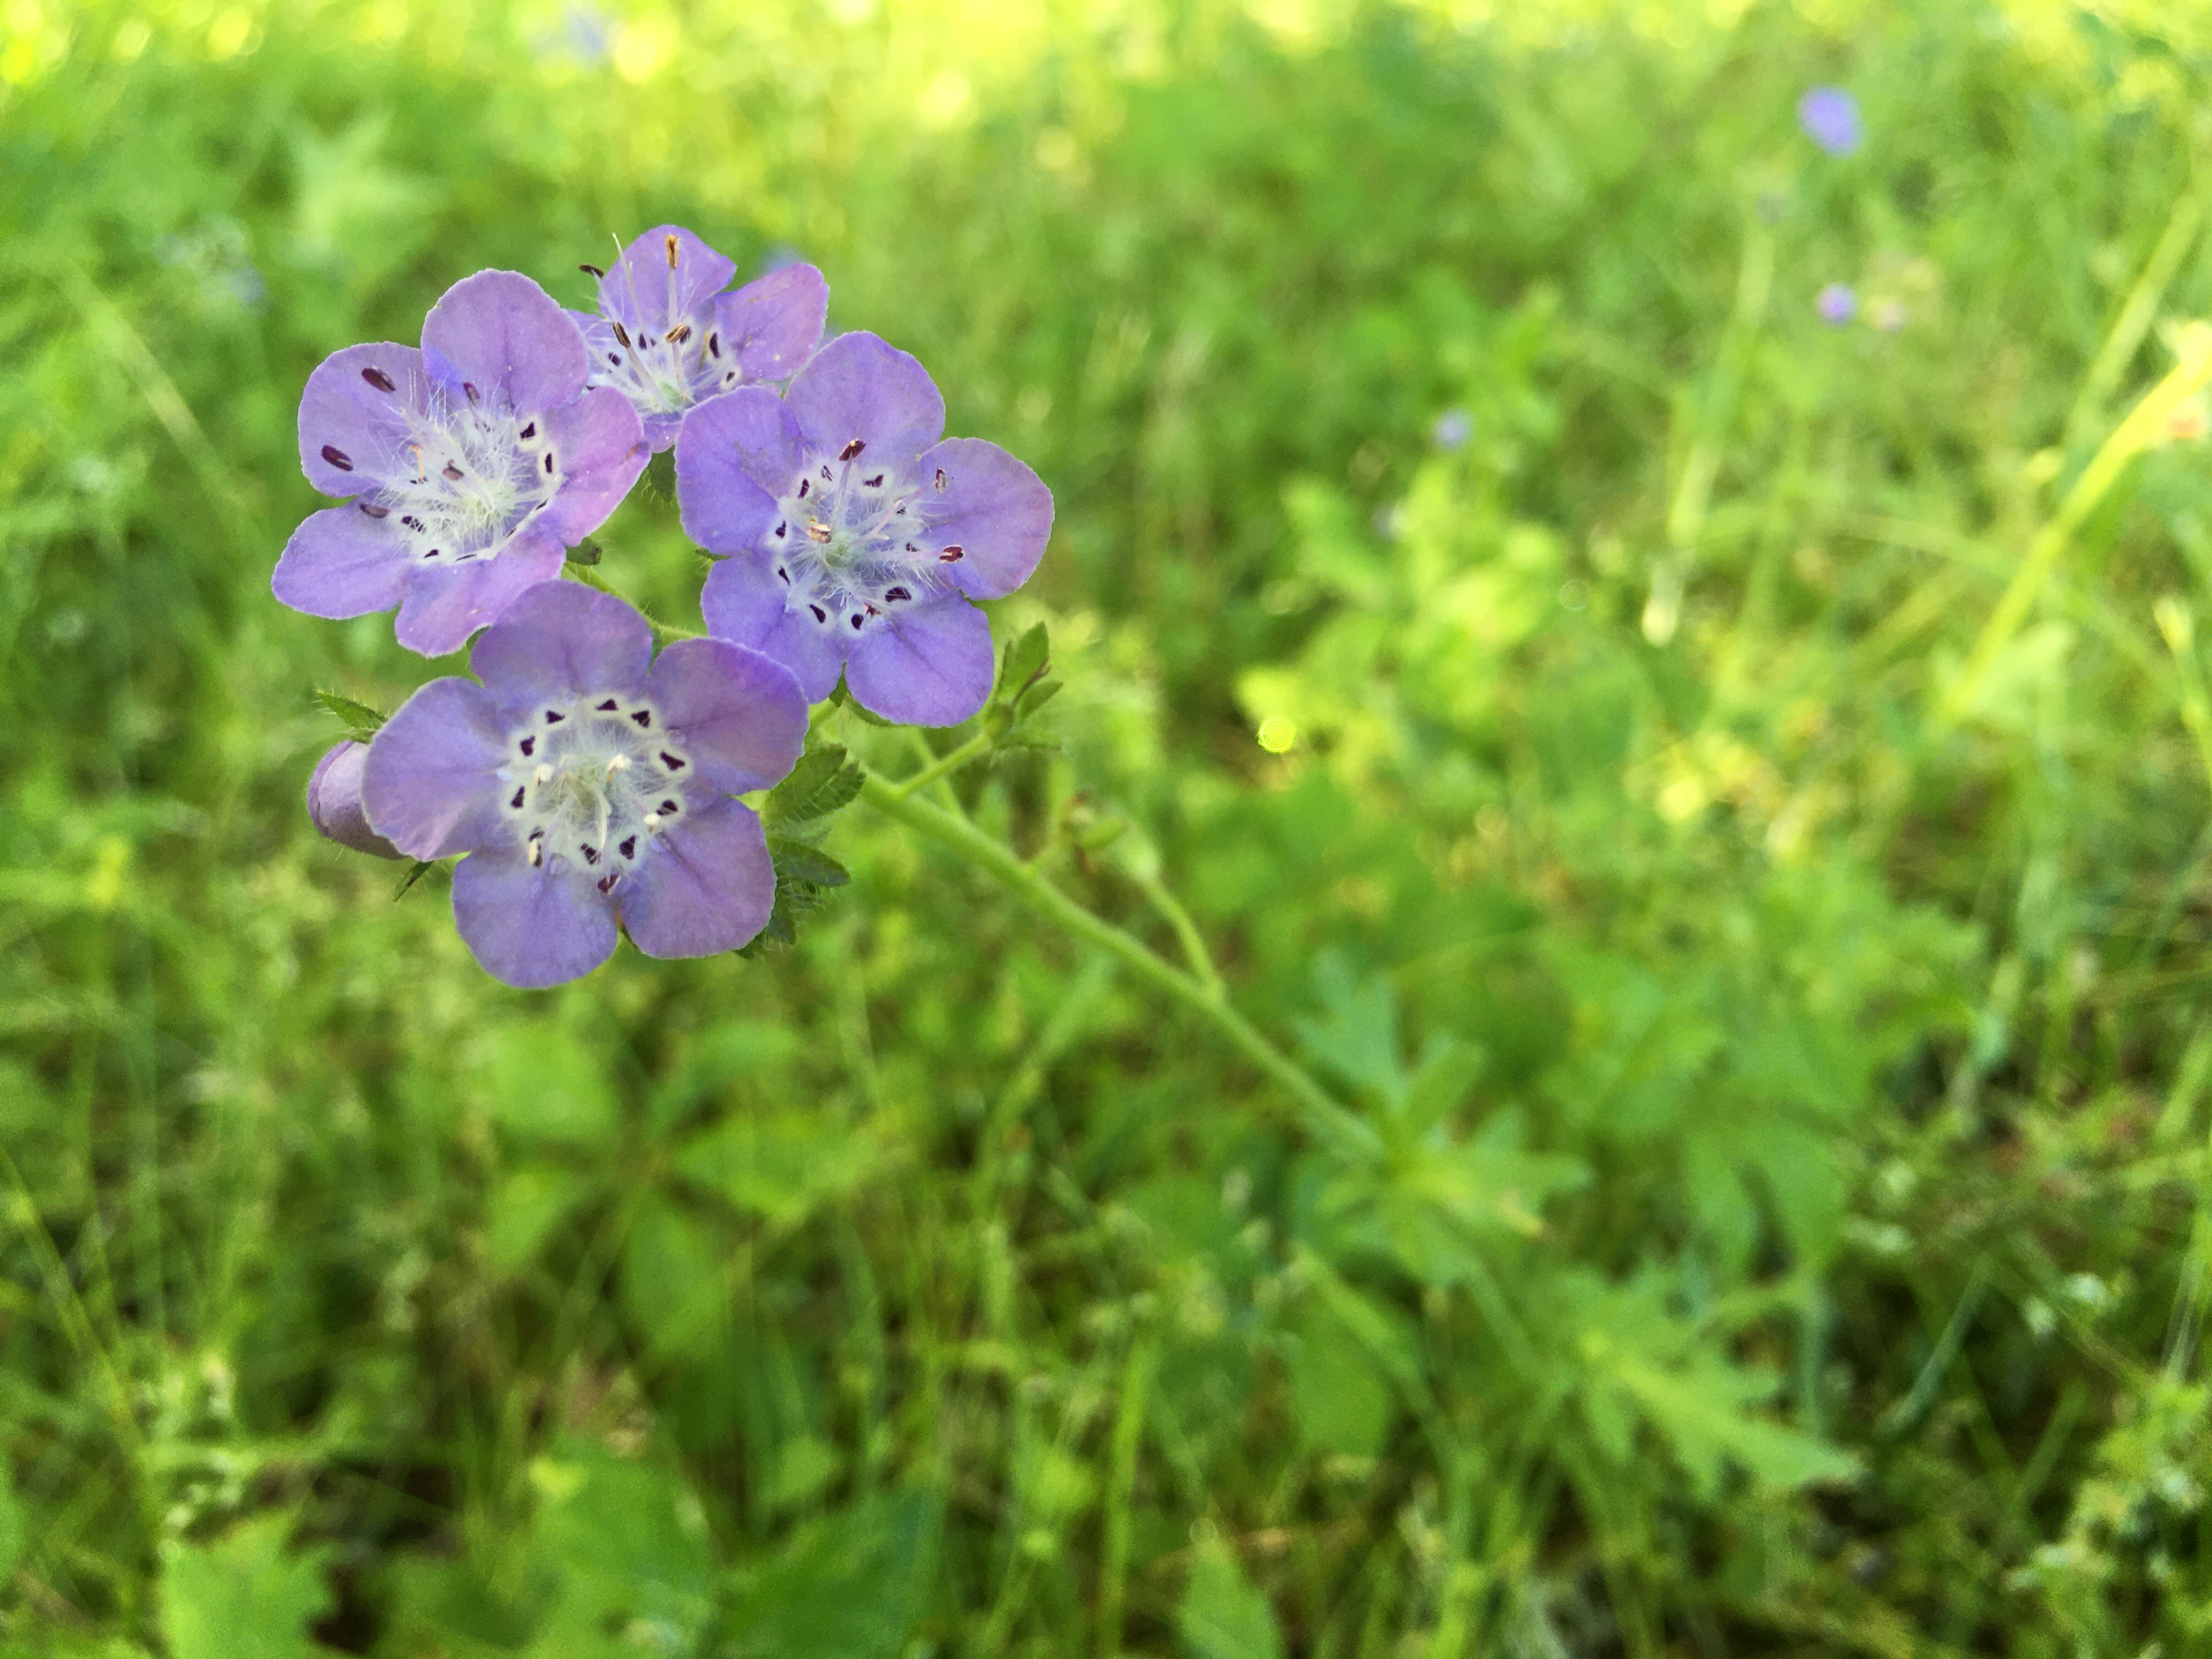 hairy phacelia  – light purple wildflowers with white rings in the centers, spotted with dark purple shapes